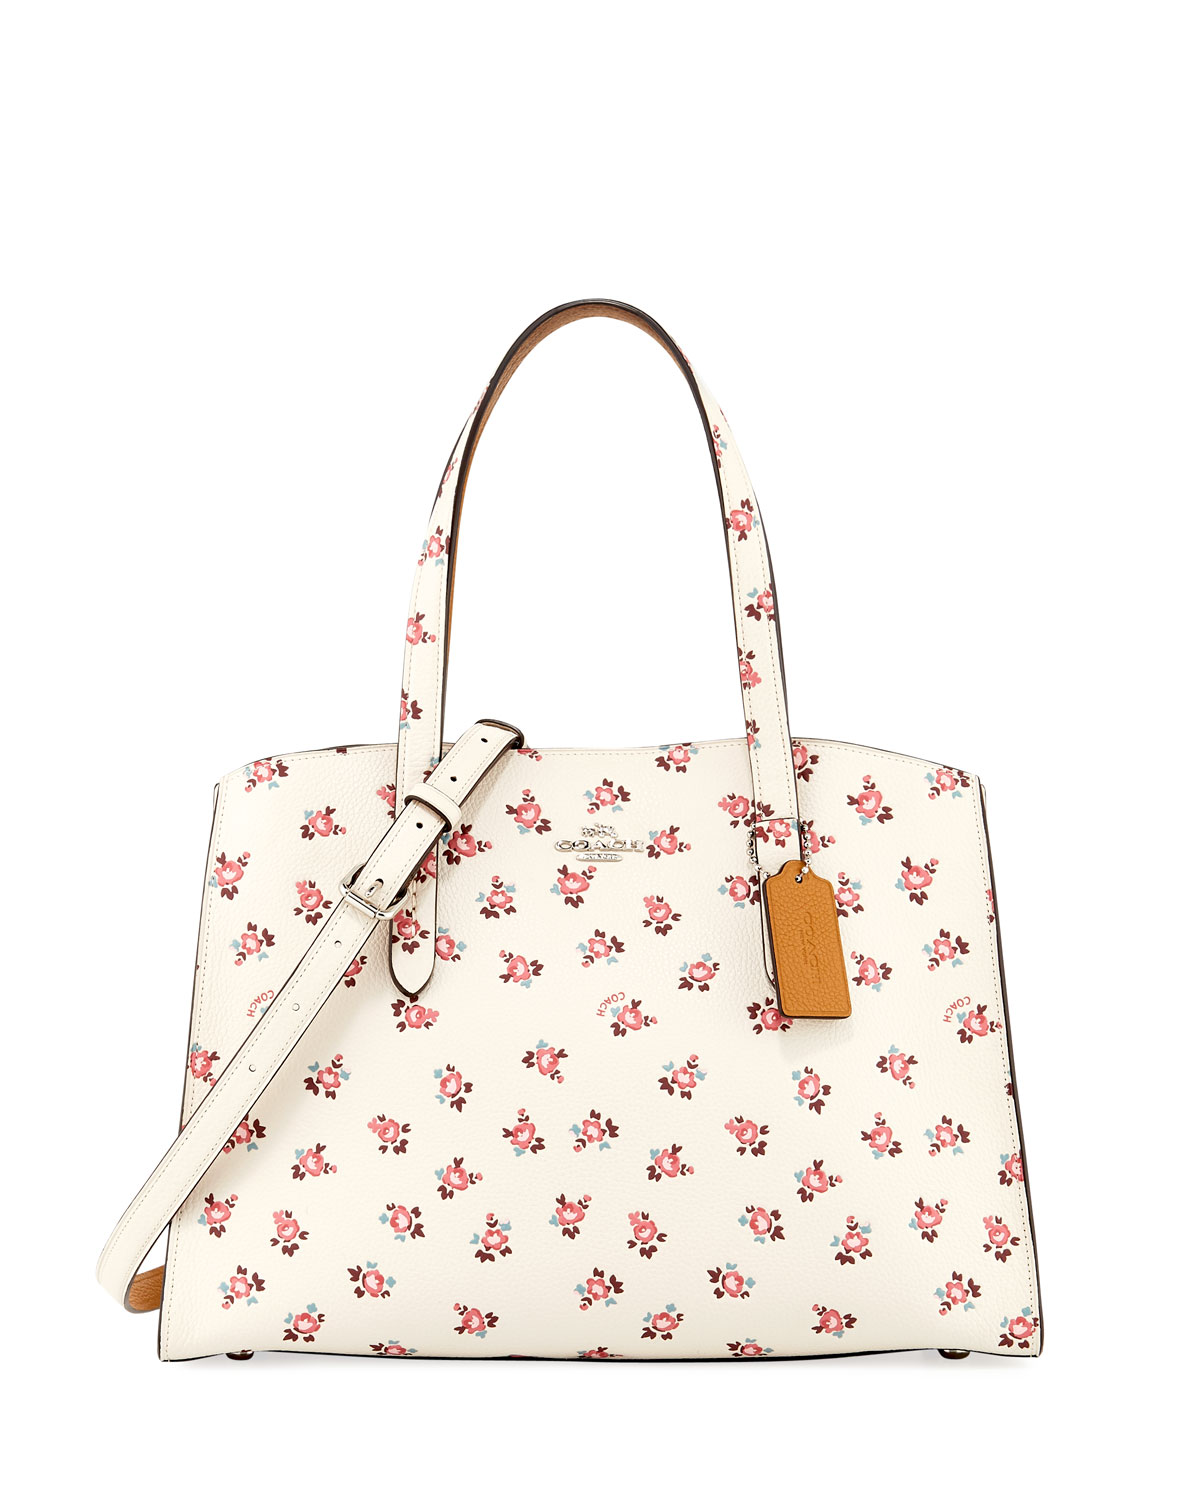 74993b687c Charlie Floral Bloom Leather Carryall Tote Bag